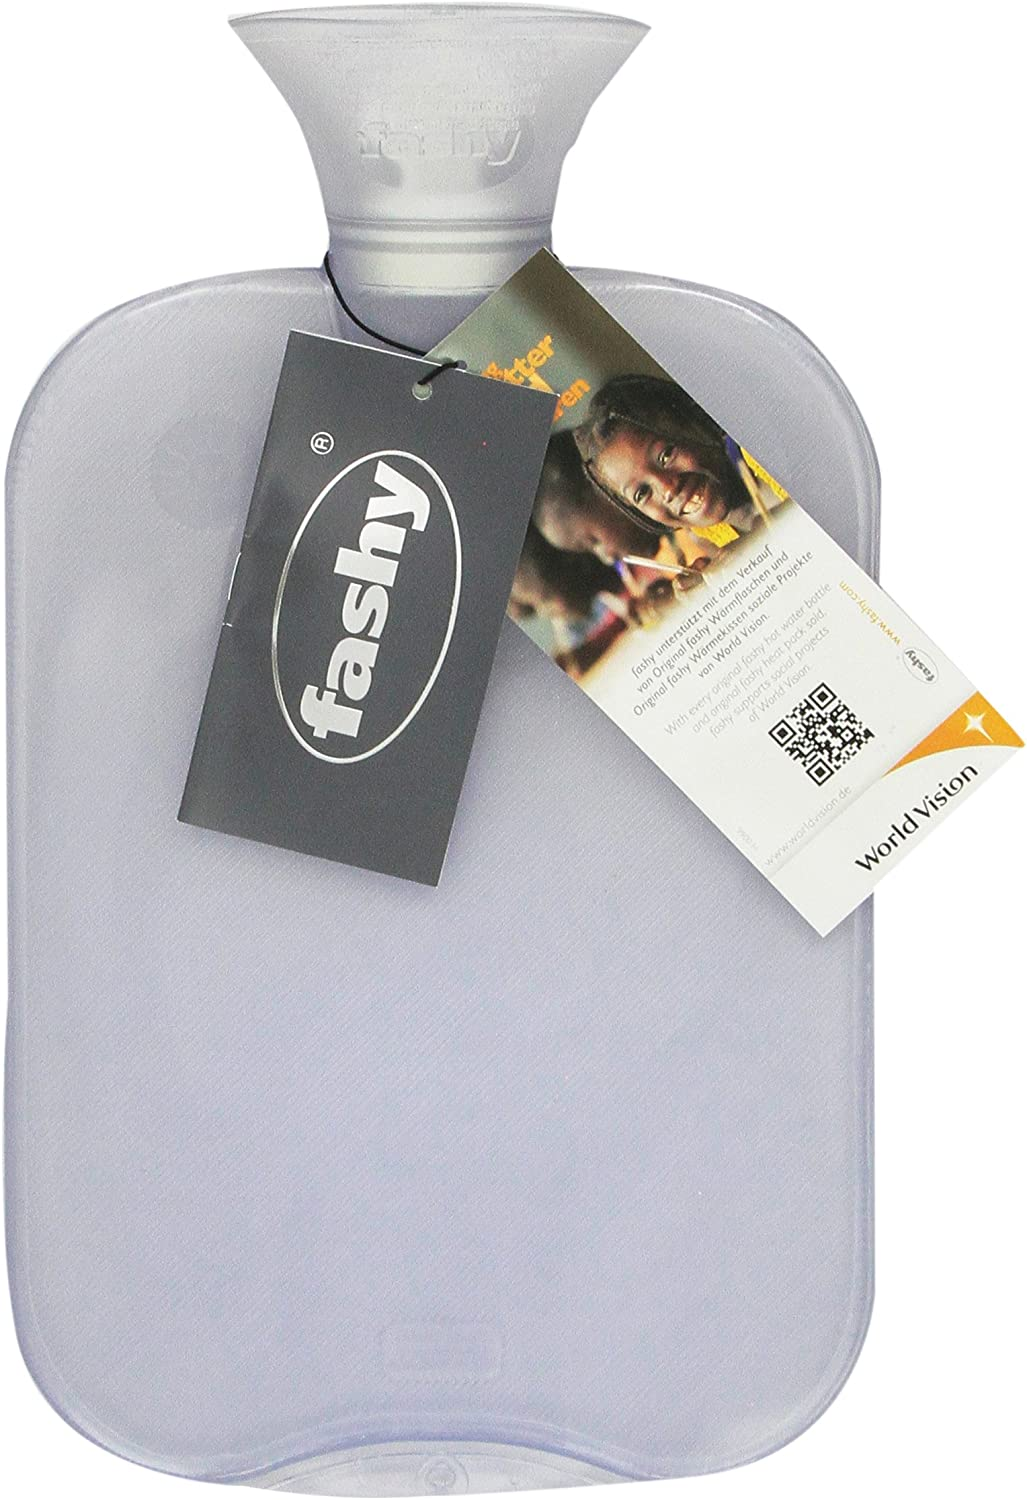 Transparent Classic Hot Water Bottle - Made in Germany: Health & Personal Care